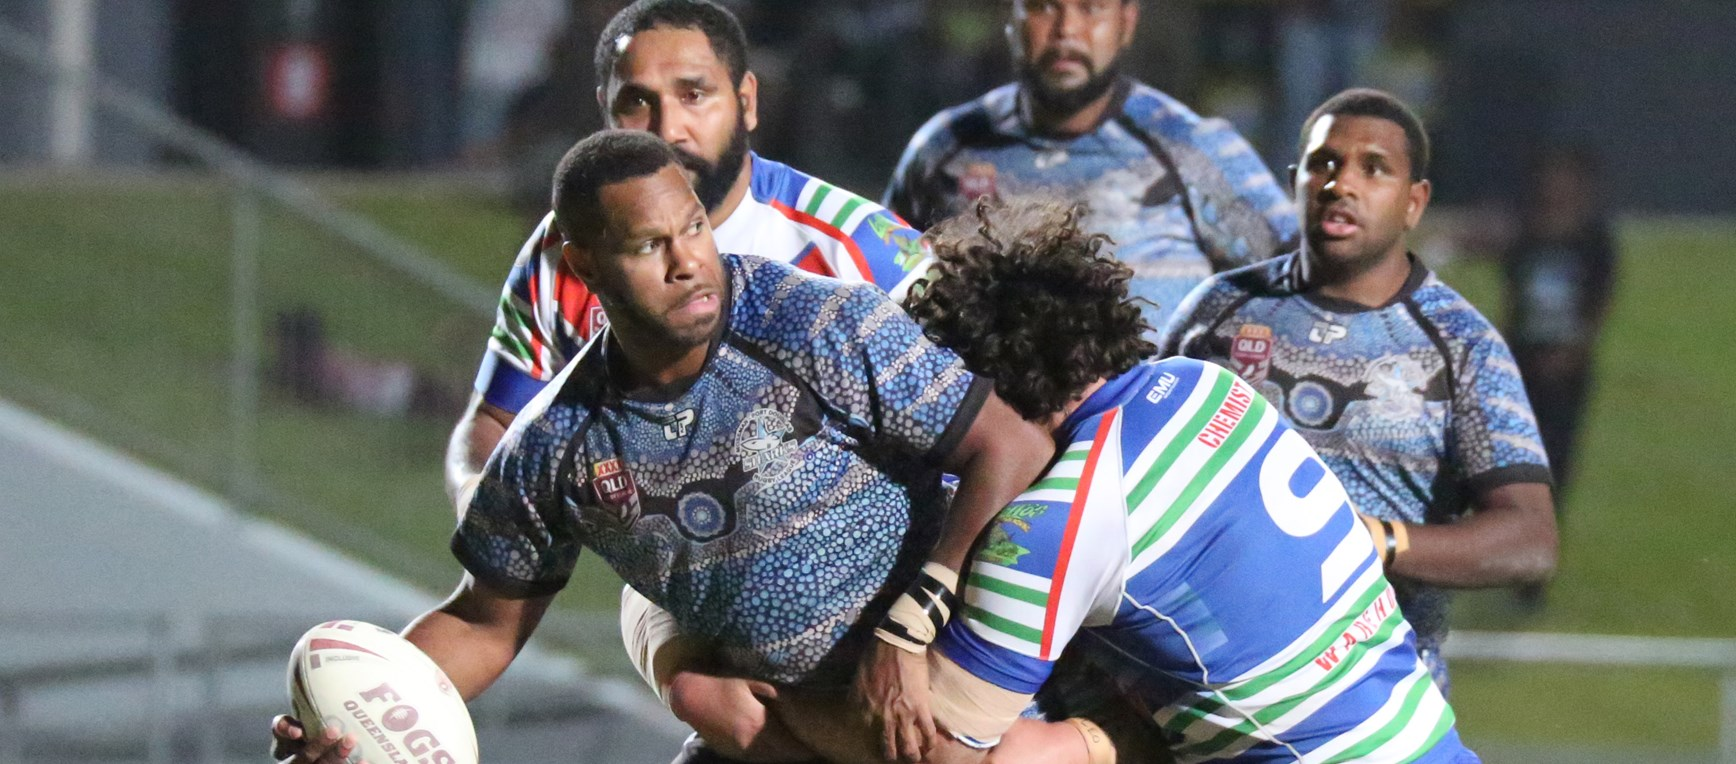 In pictures: Cairns District Rugby League semi finals